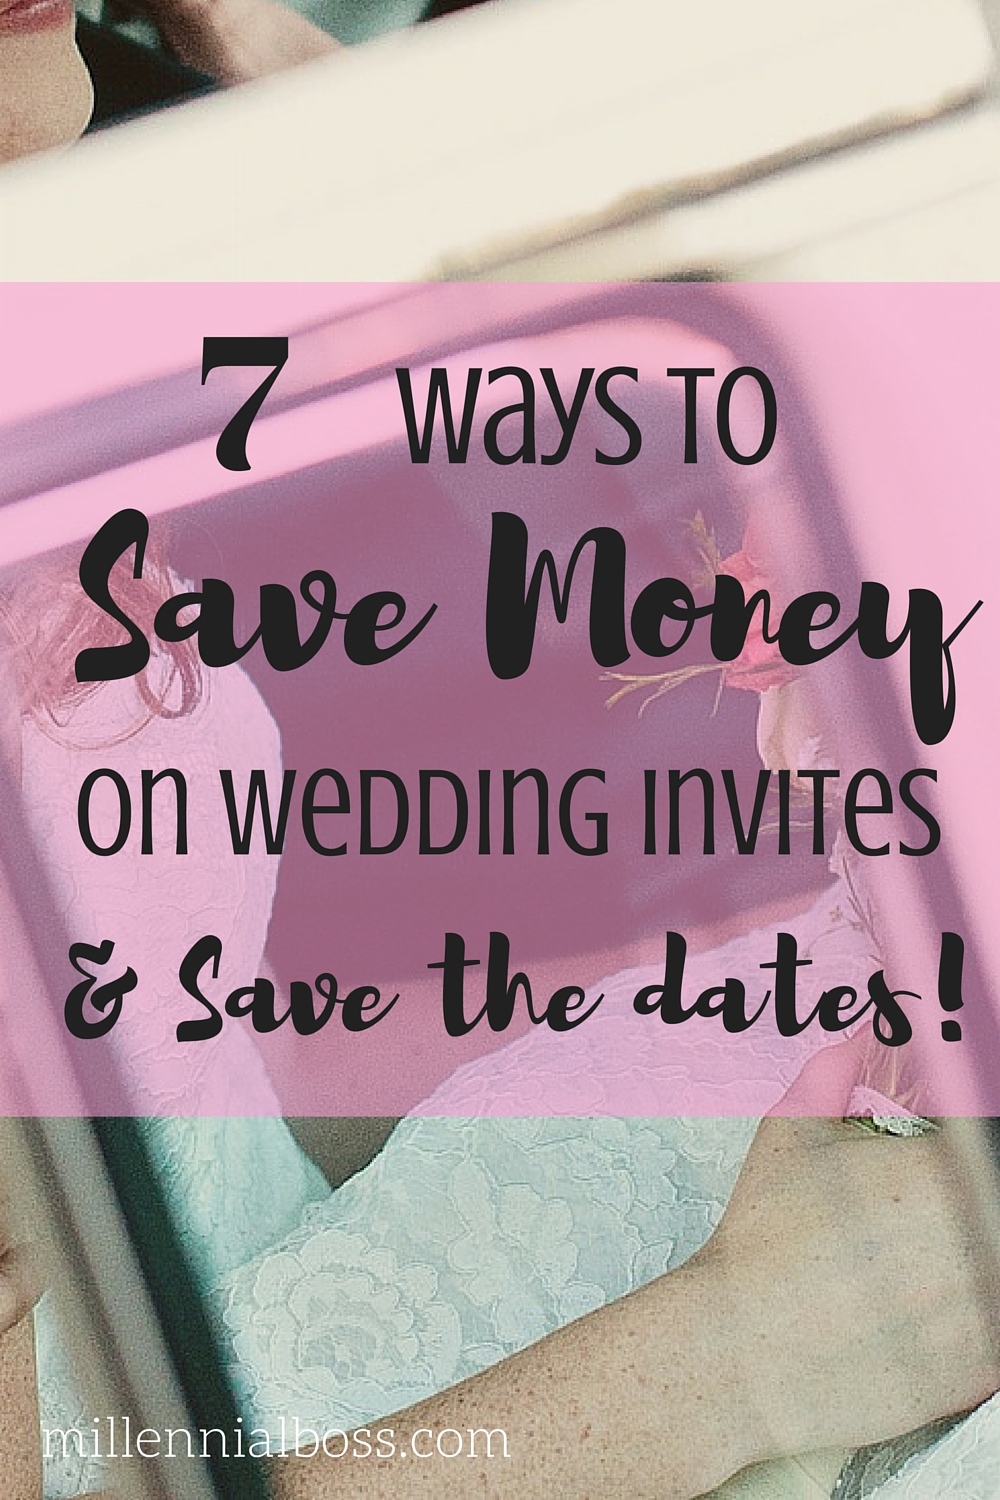 7 Ways to save money on wedding invites, stationary, and save the dates!